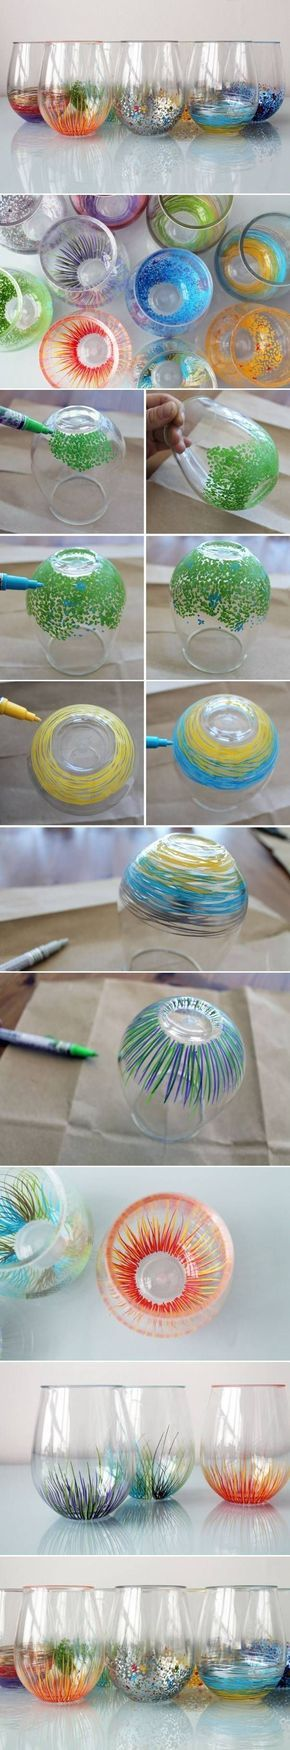 33284484719985322 4855512072272579 Decorated Vases (Sharpie Paint Markers) | Butterfly Kisses